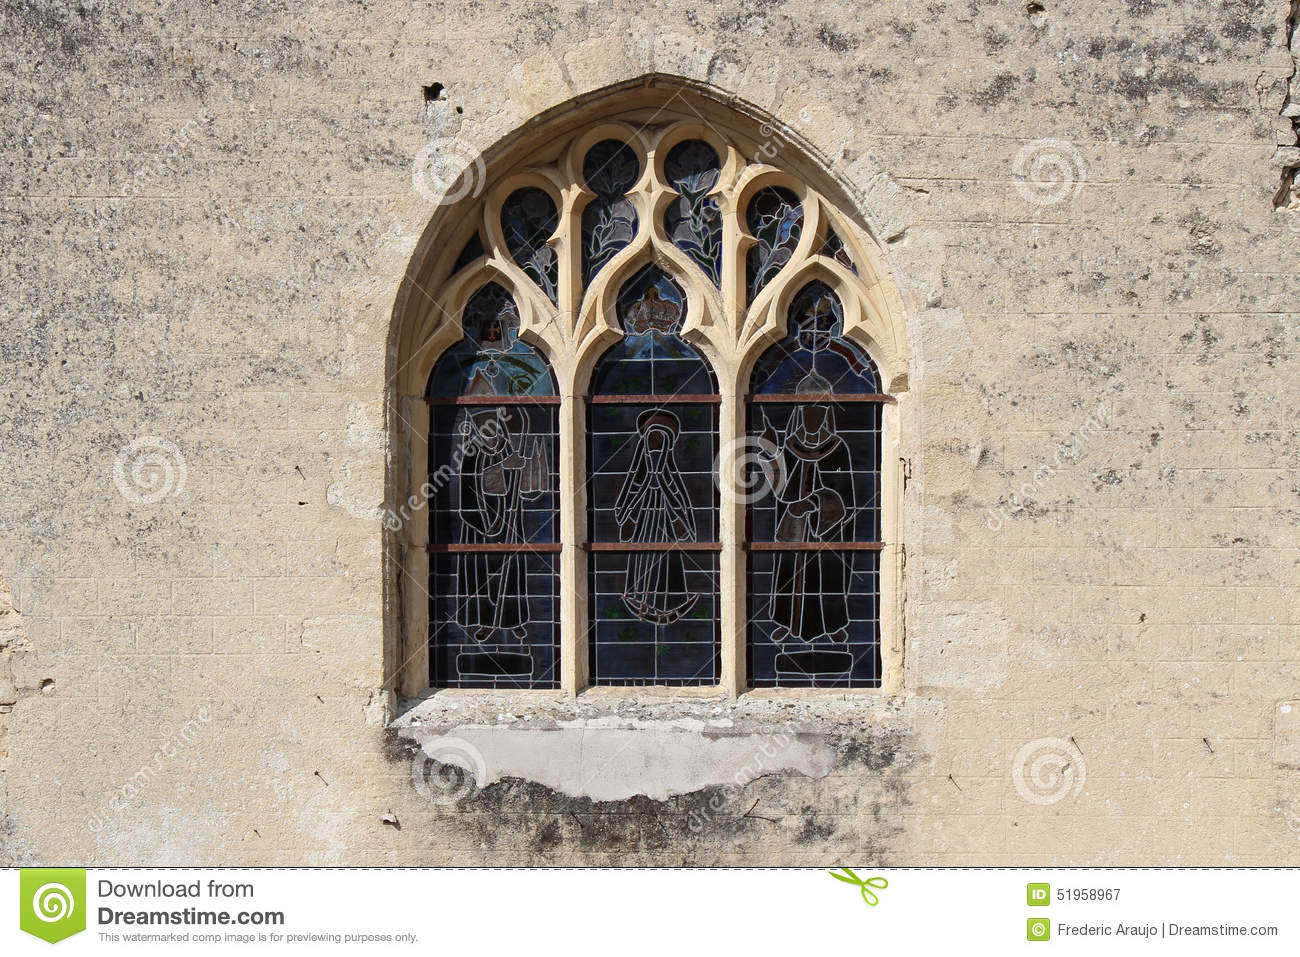 Stained-glass windows decorate the facade of a church in Occagnes (France)